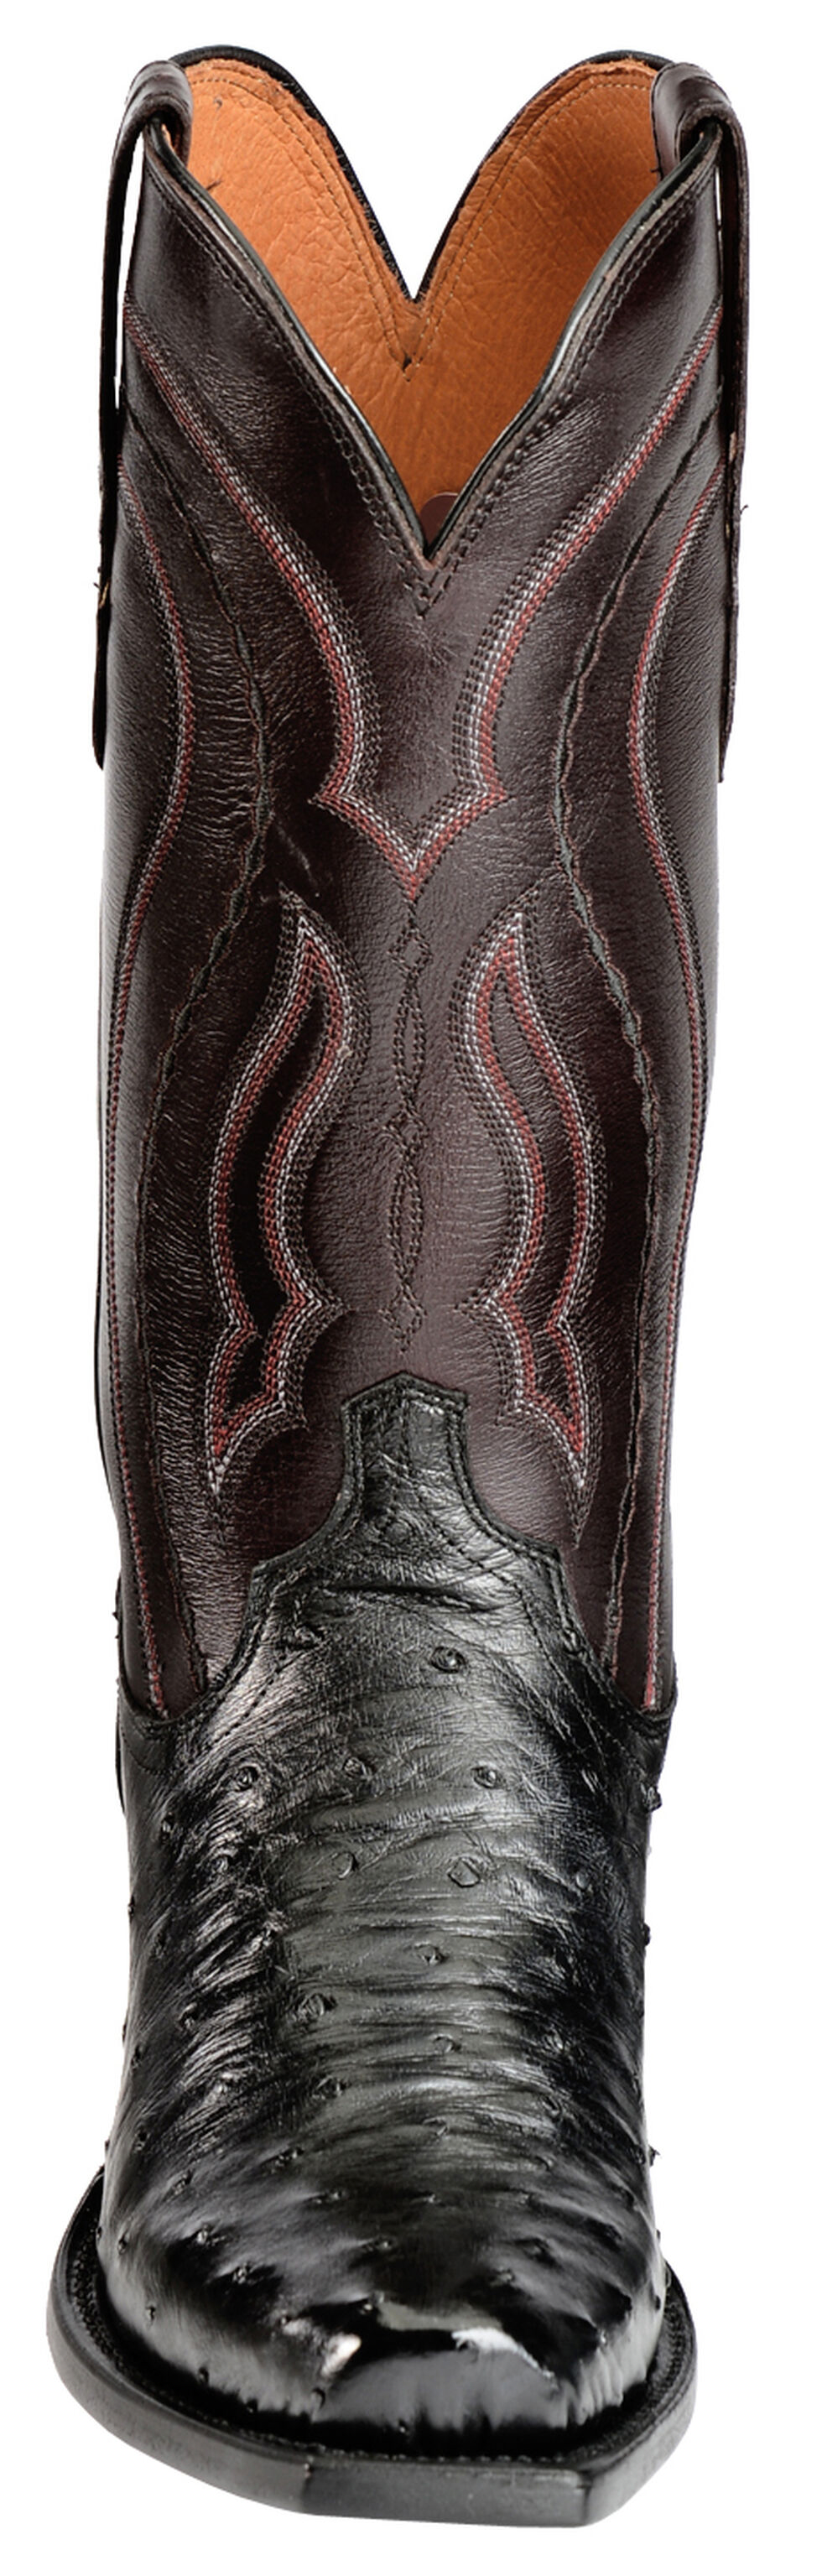 Lucchese Handmade 1883 Montana Full Quill Ostrich Western Boots - Snoot Toe, Black, hi-res